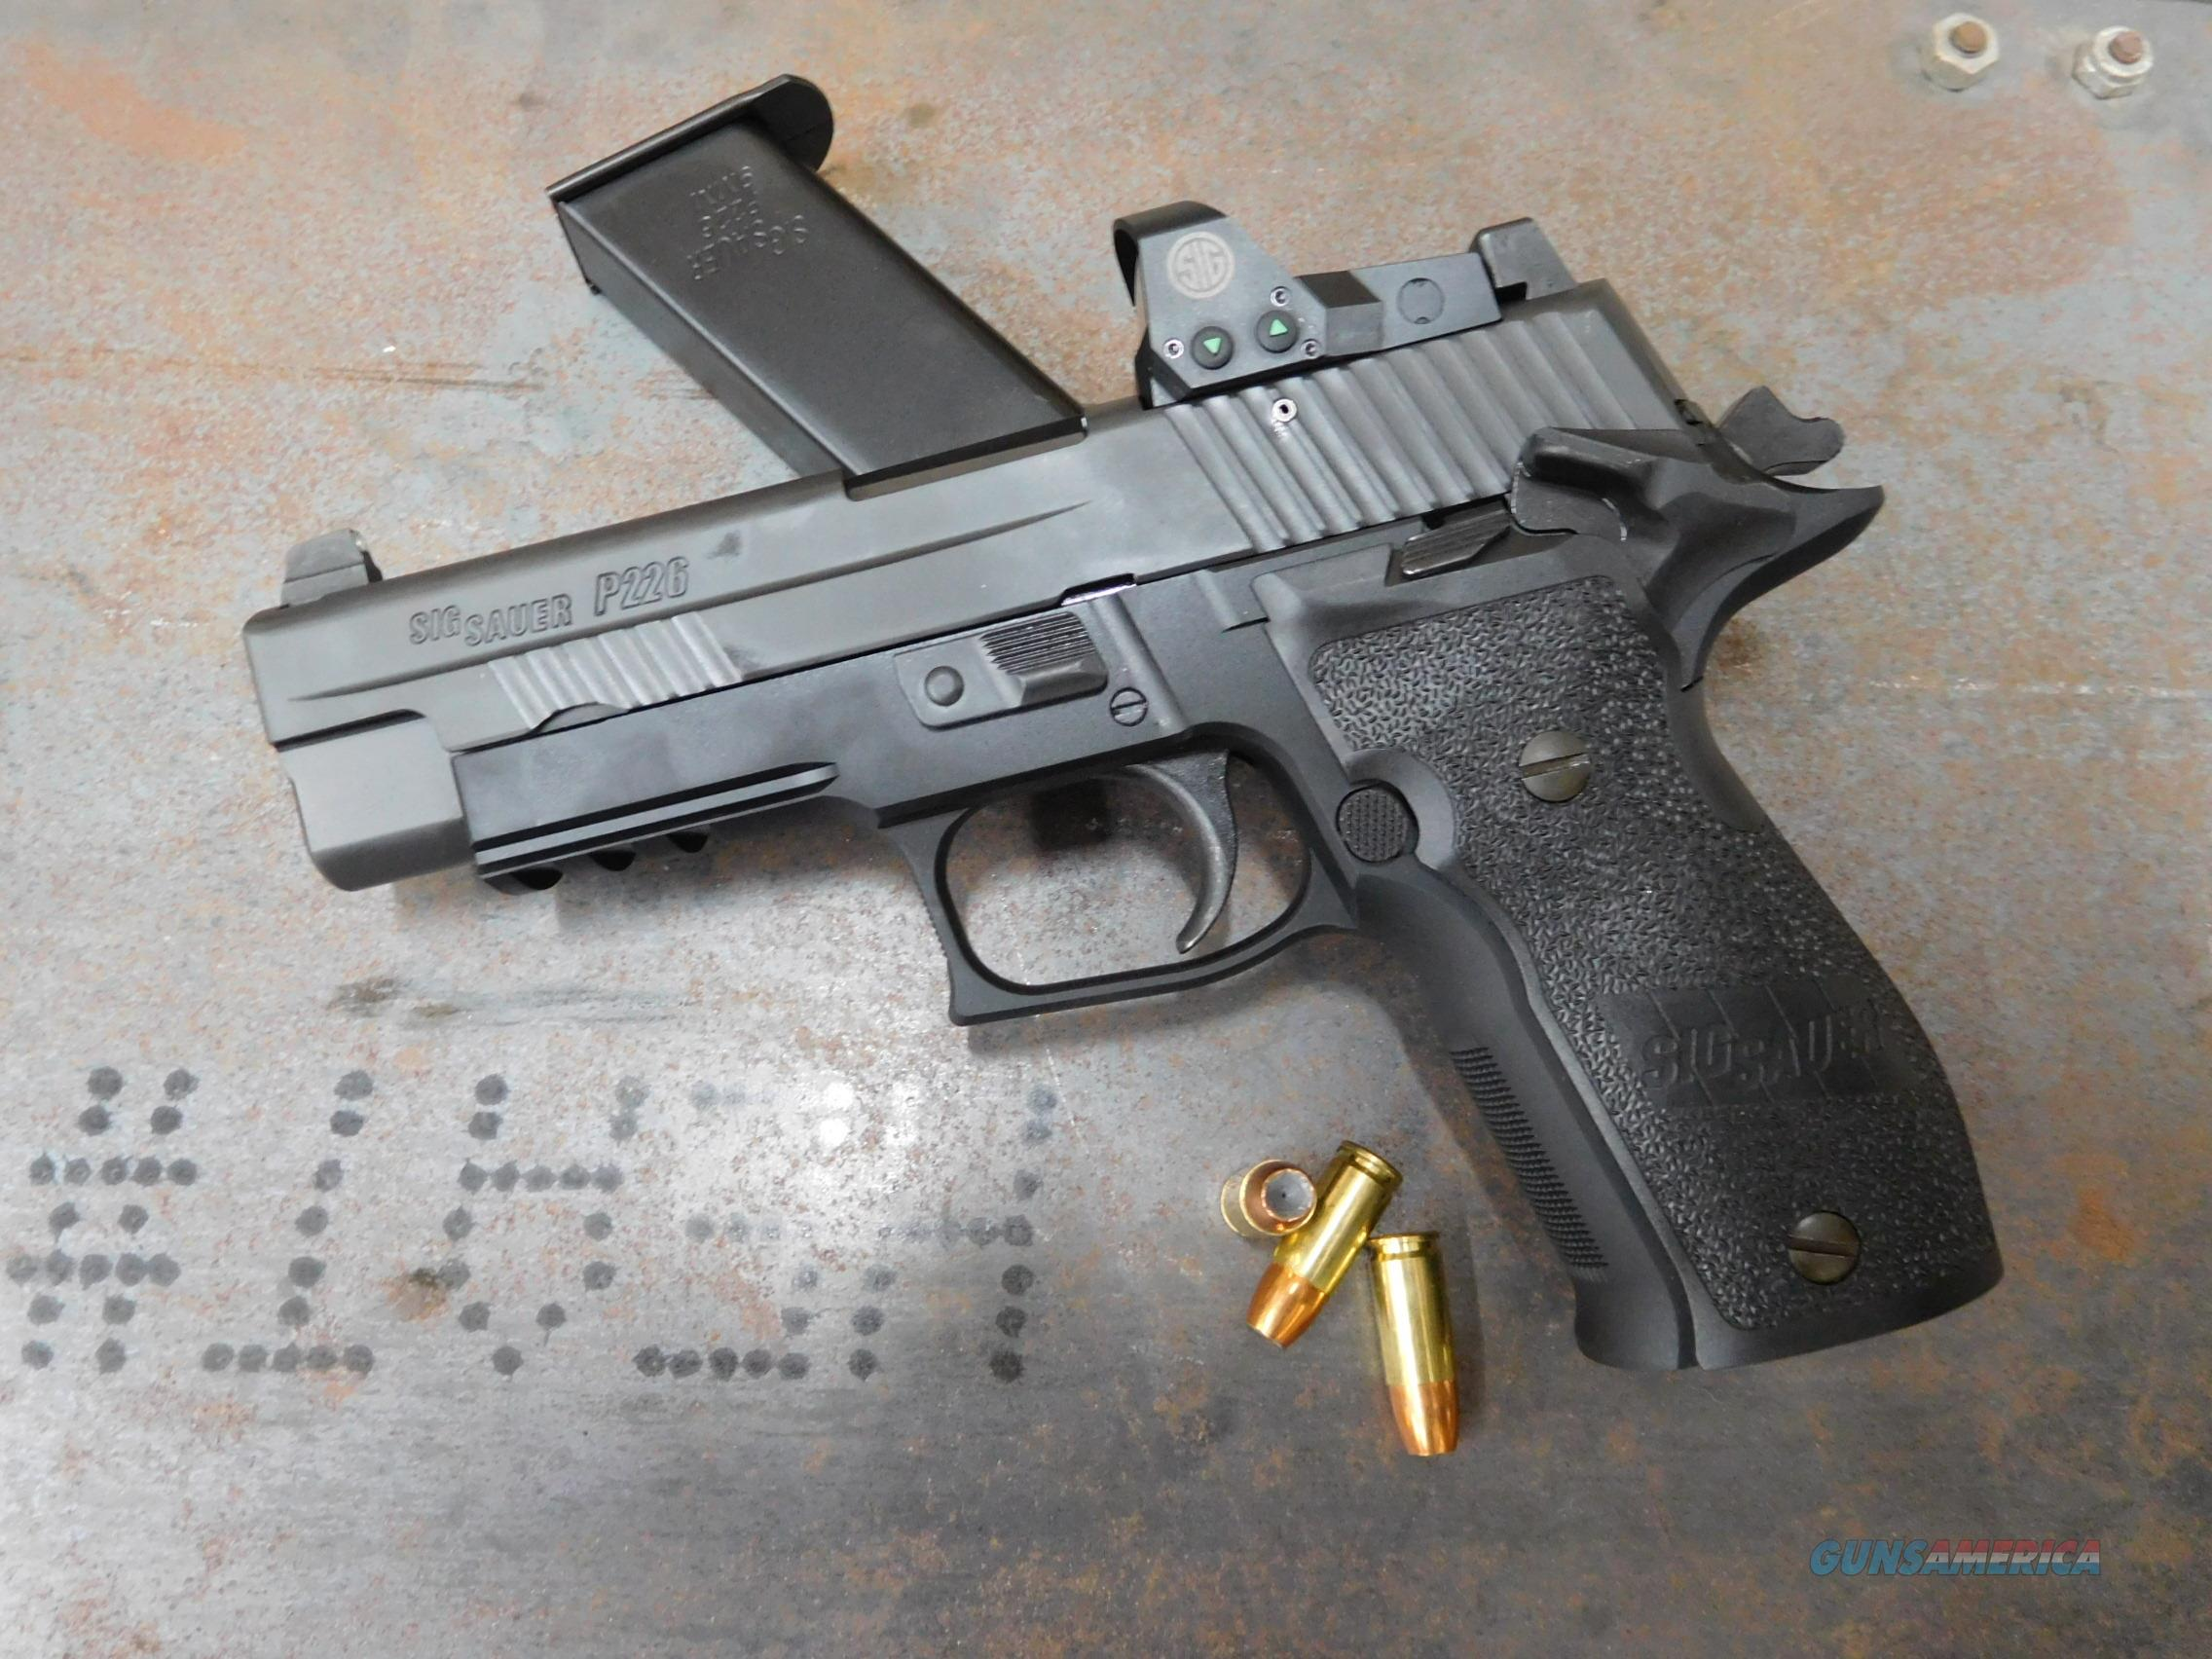 Sig P226 9mm w/Romeo 1 and night sights BRAND NEW  Guns > Pistols > Sig - Sauer/Sigarms Pistols > P226